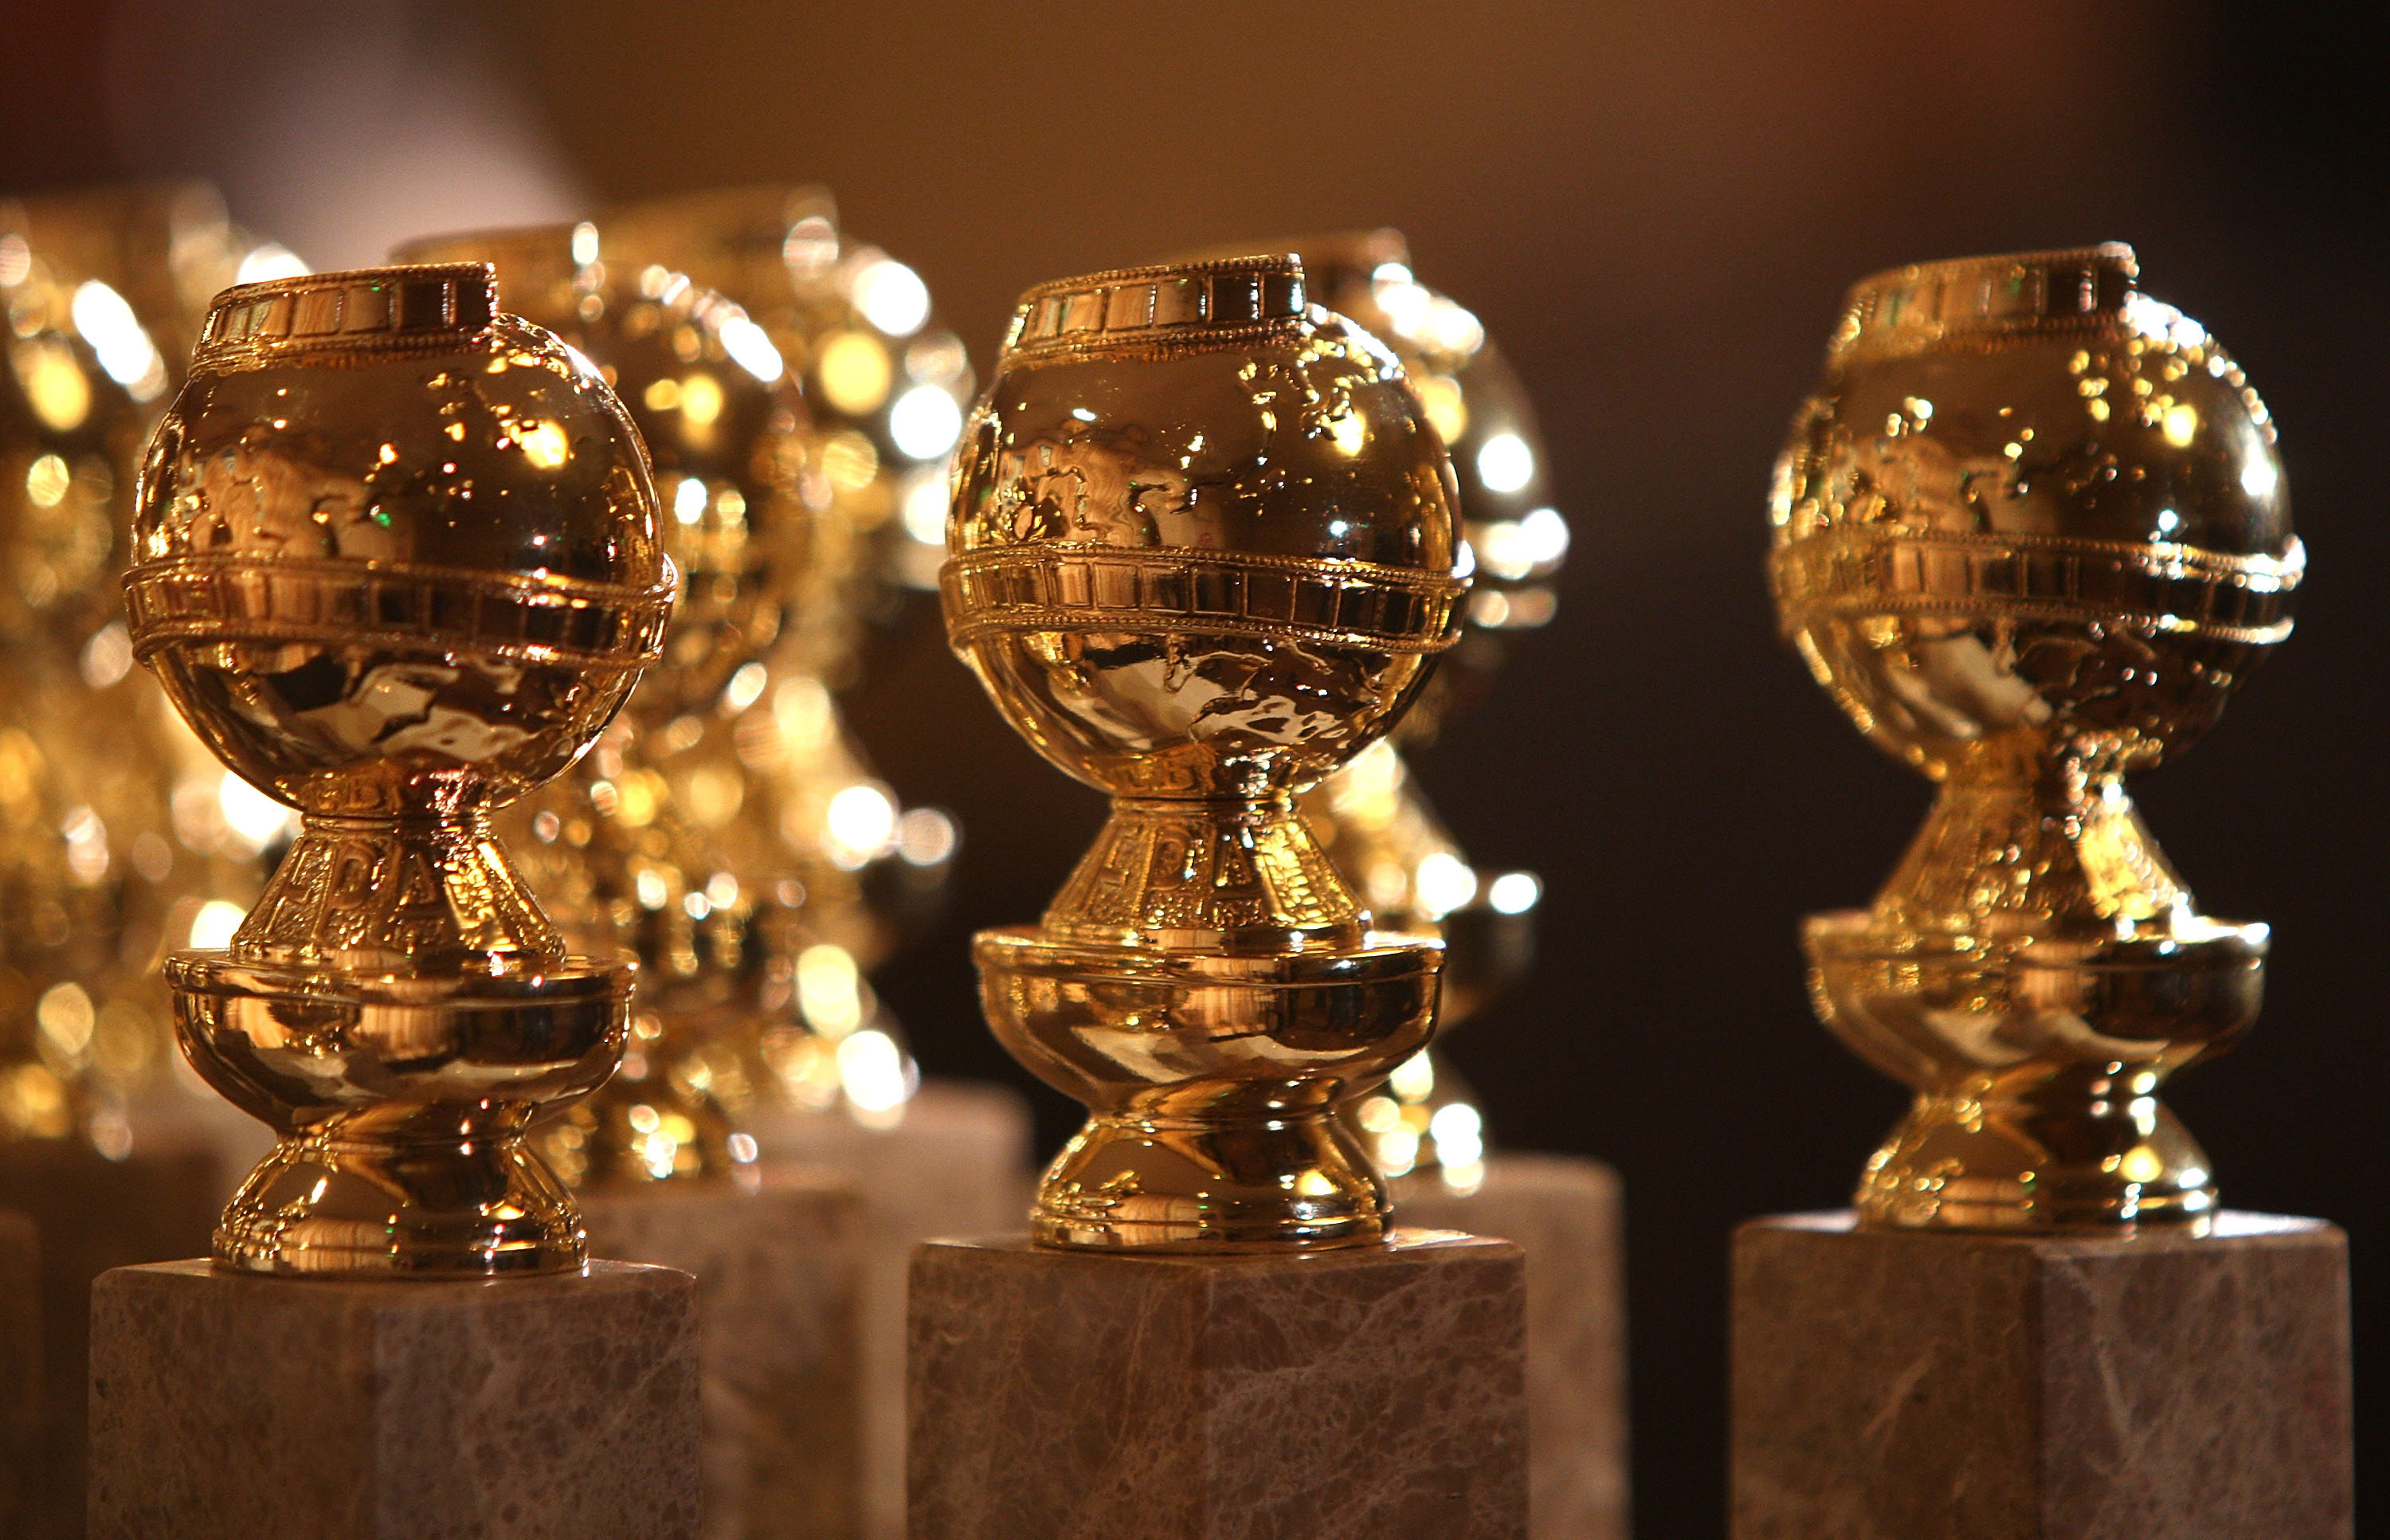 Surprise Surprise, This Year's Golden Globe Nominees Aren't All That Egregious